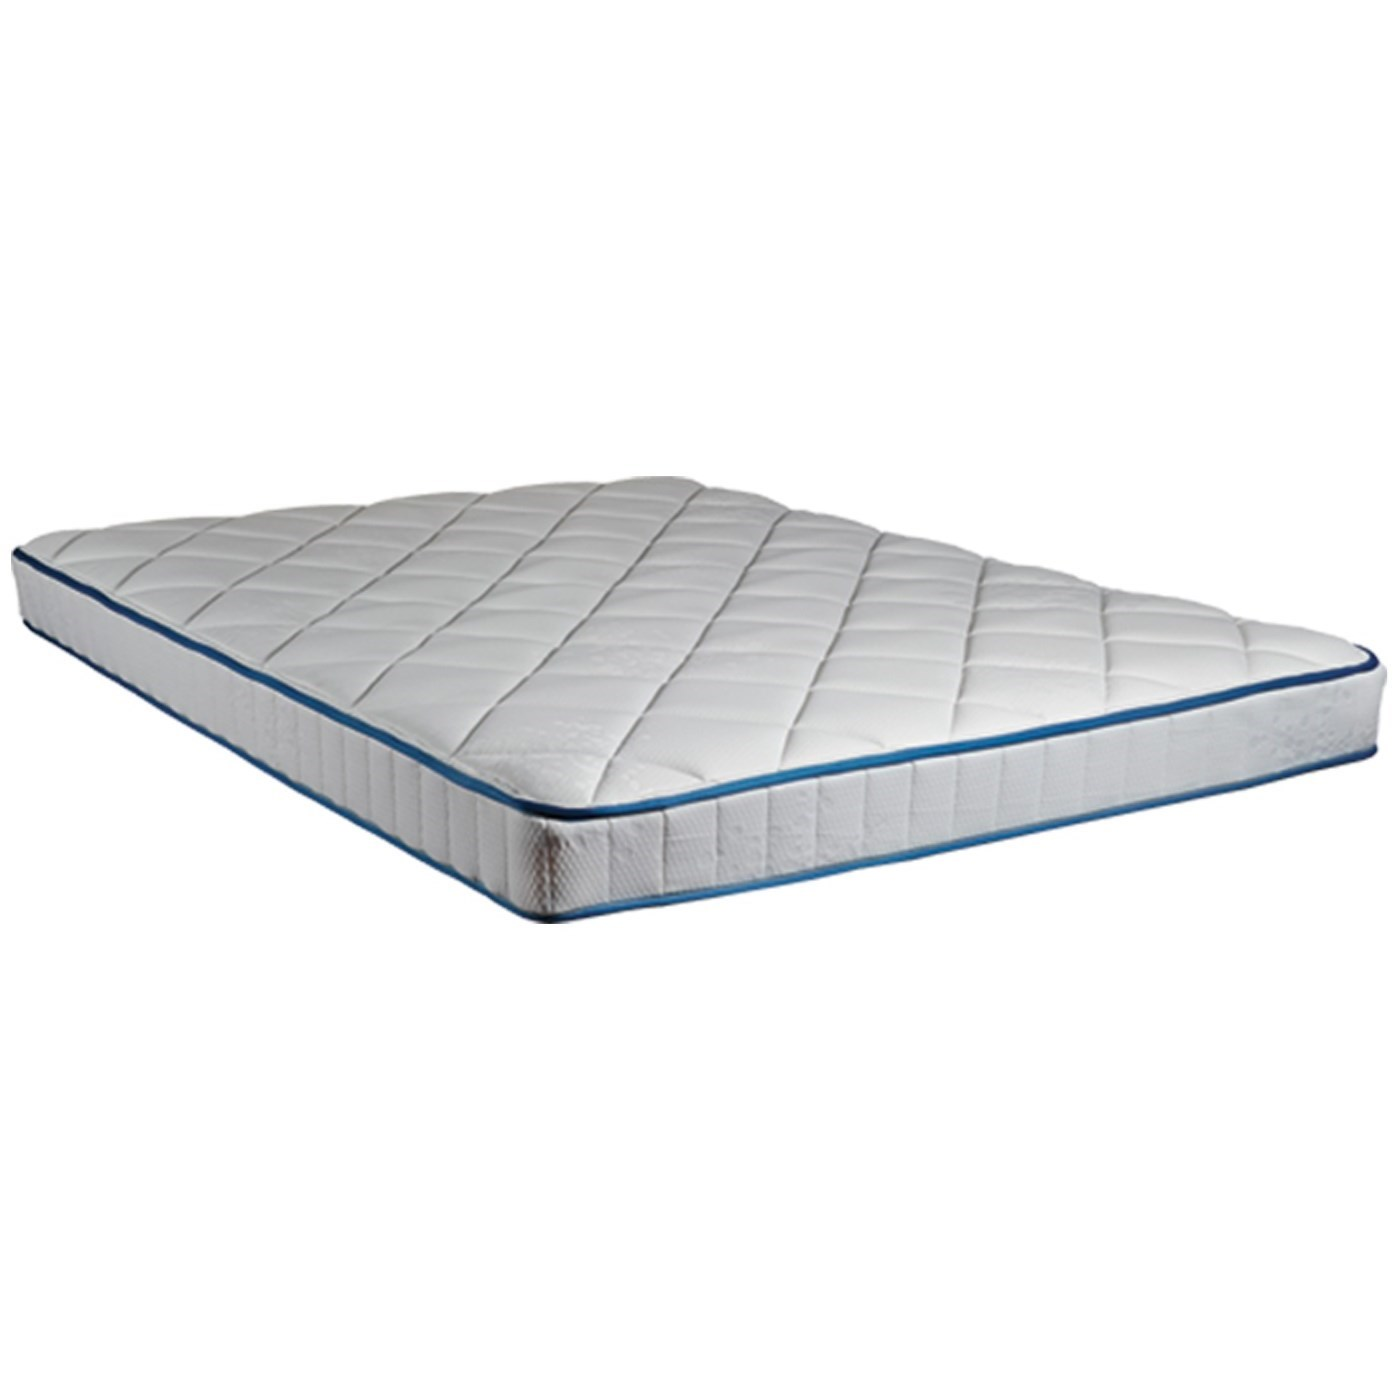 "Queen 8"" Innerspring Mattress-in-aBox"